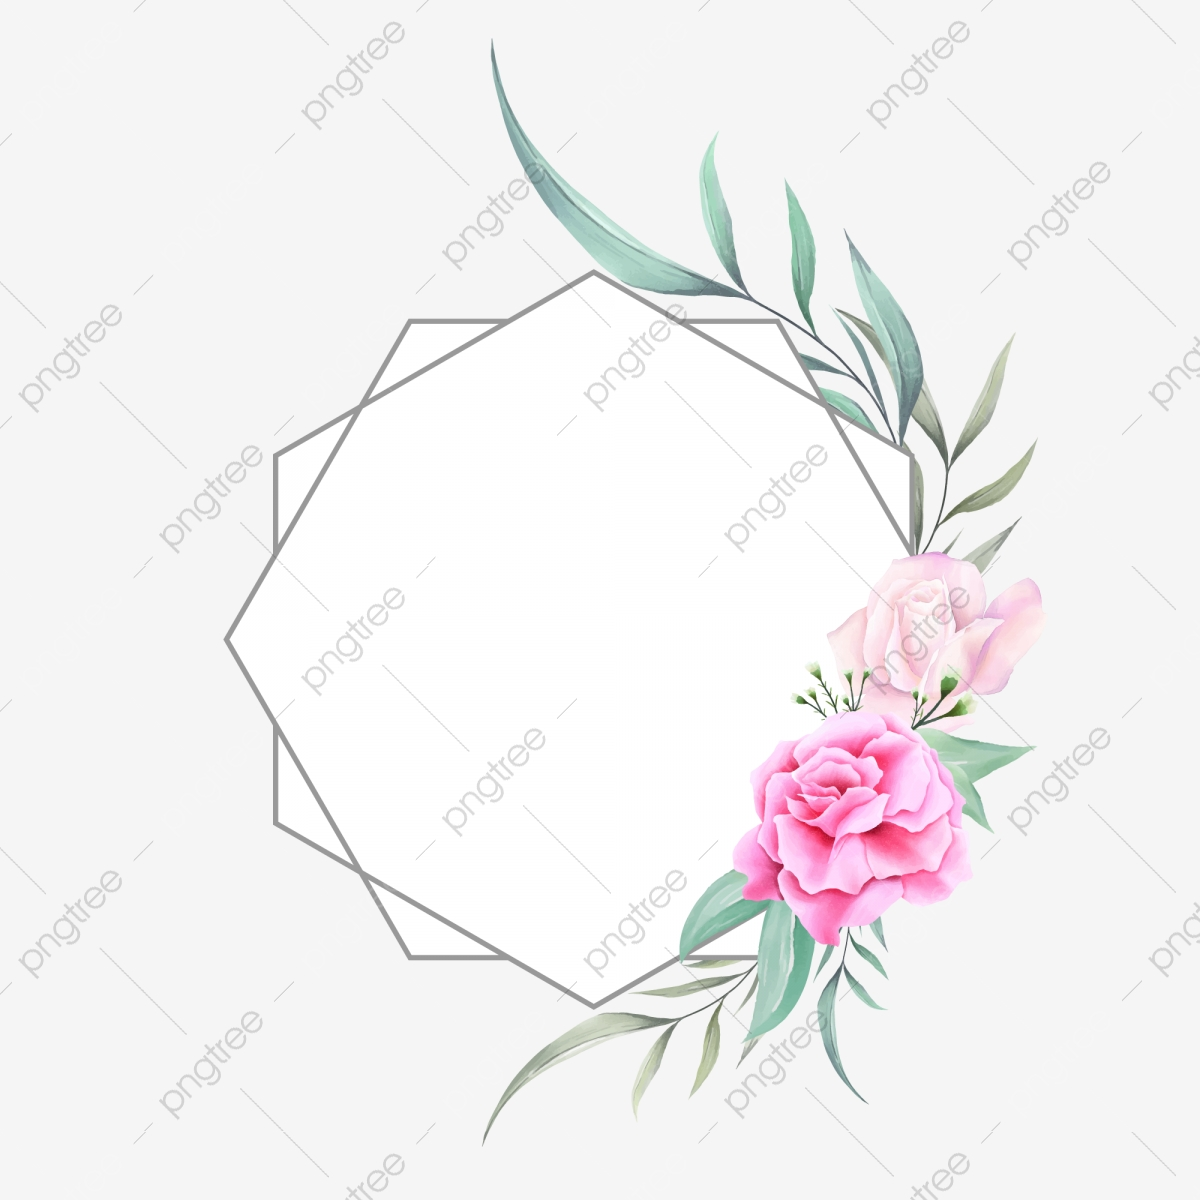 Beautiful Minimalist Watercolor Floral Frame Of Roses And Wild ...